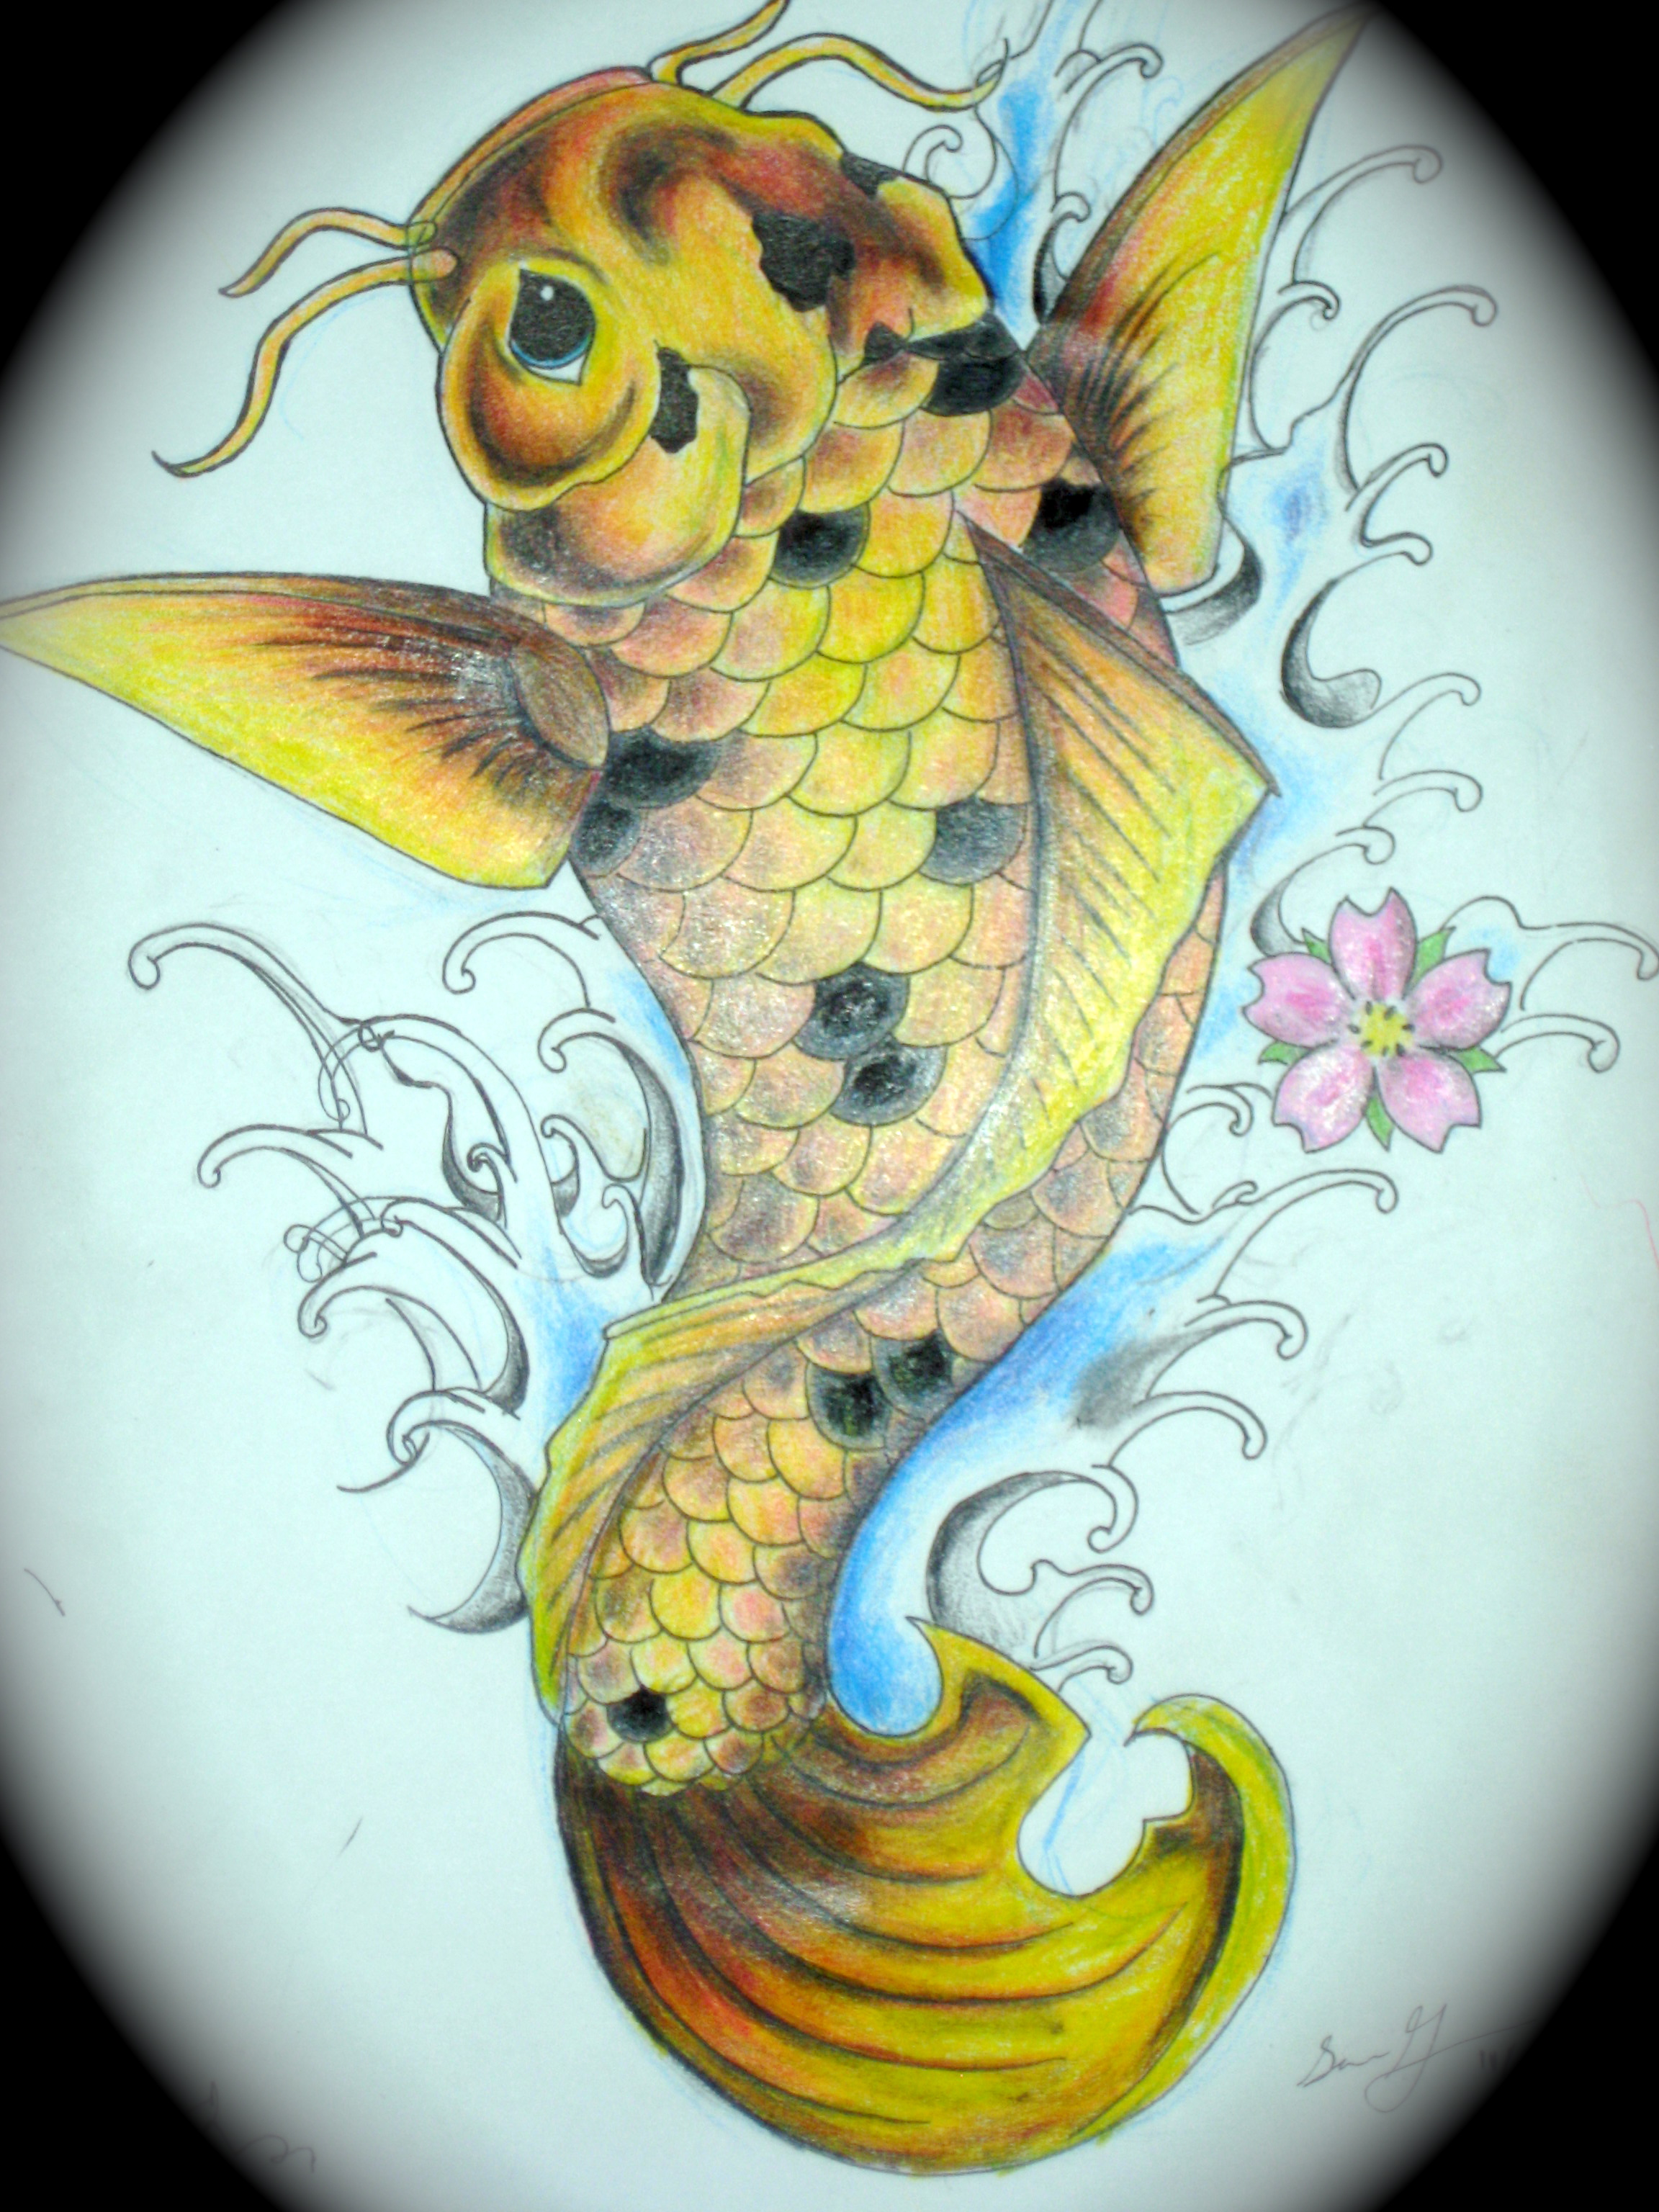 Koi Fish Tattoo Designs On Chest: Tattoo Designs Of Animal: March 2010